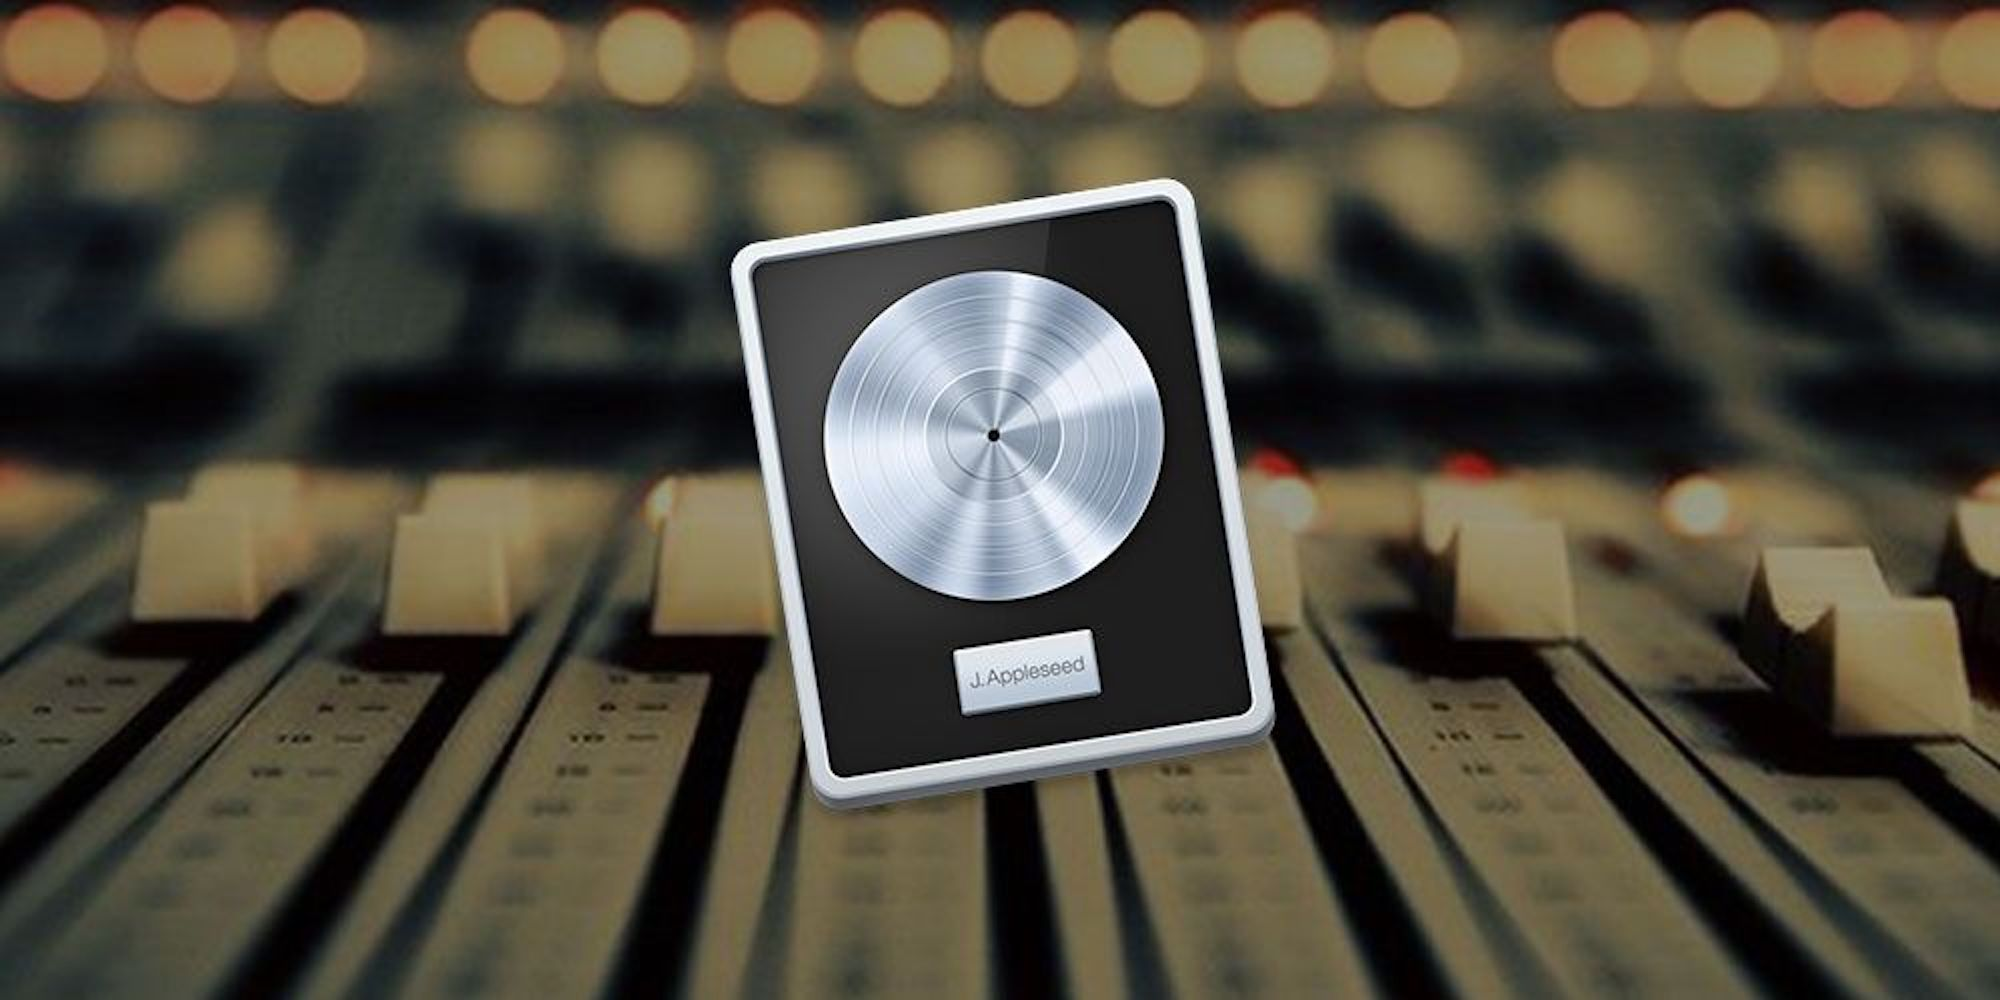 Get started in music production with this Logic Pro X Course Bundle, now $29